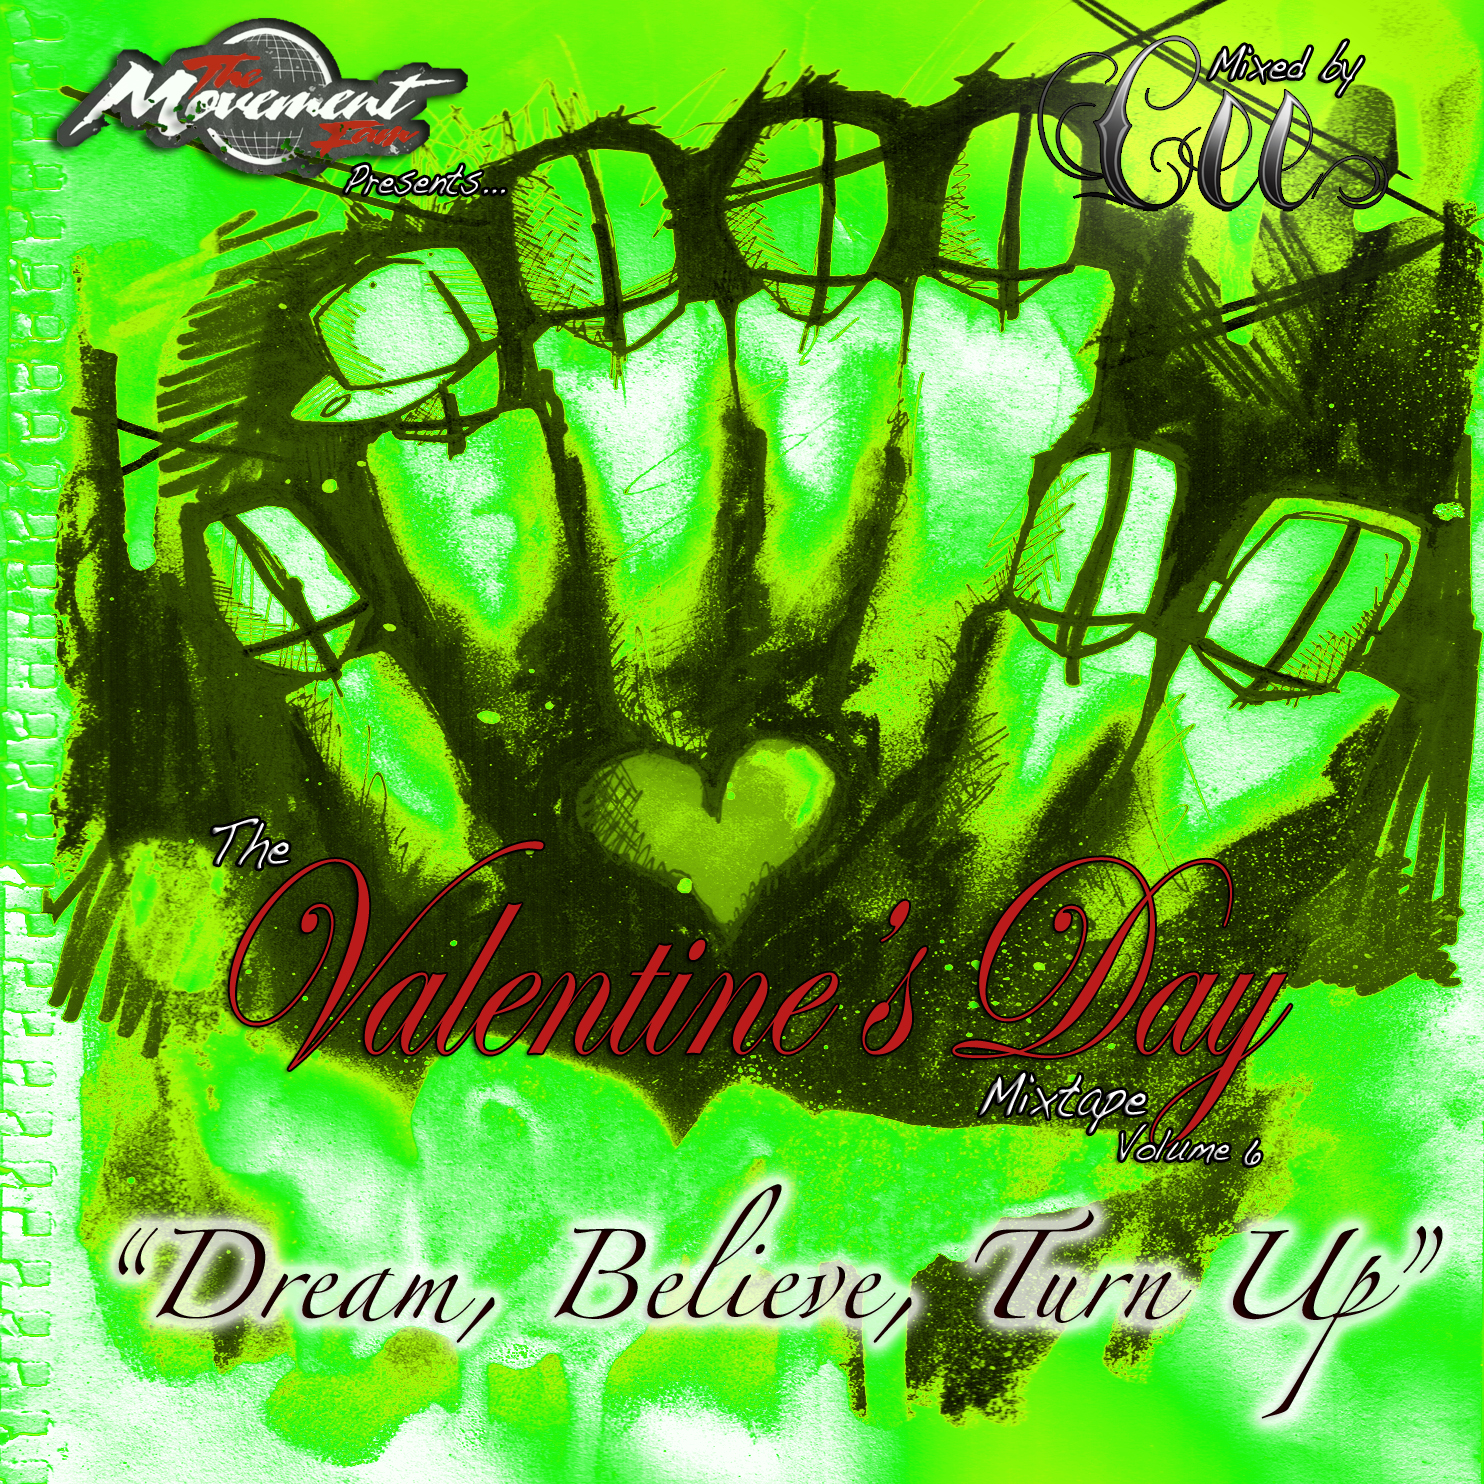 Valentines-Day-Cover-Vol-6-FRONT.jpg